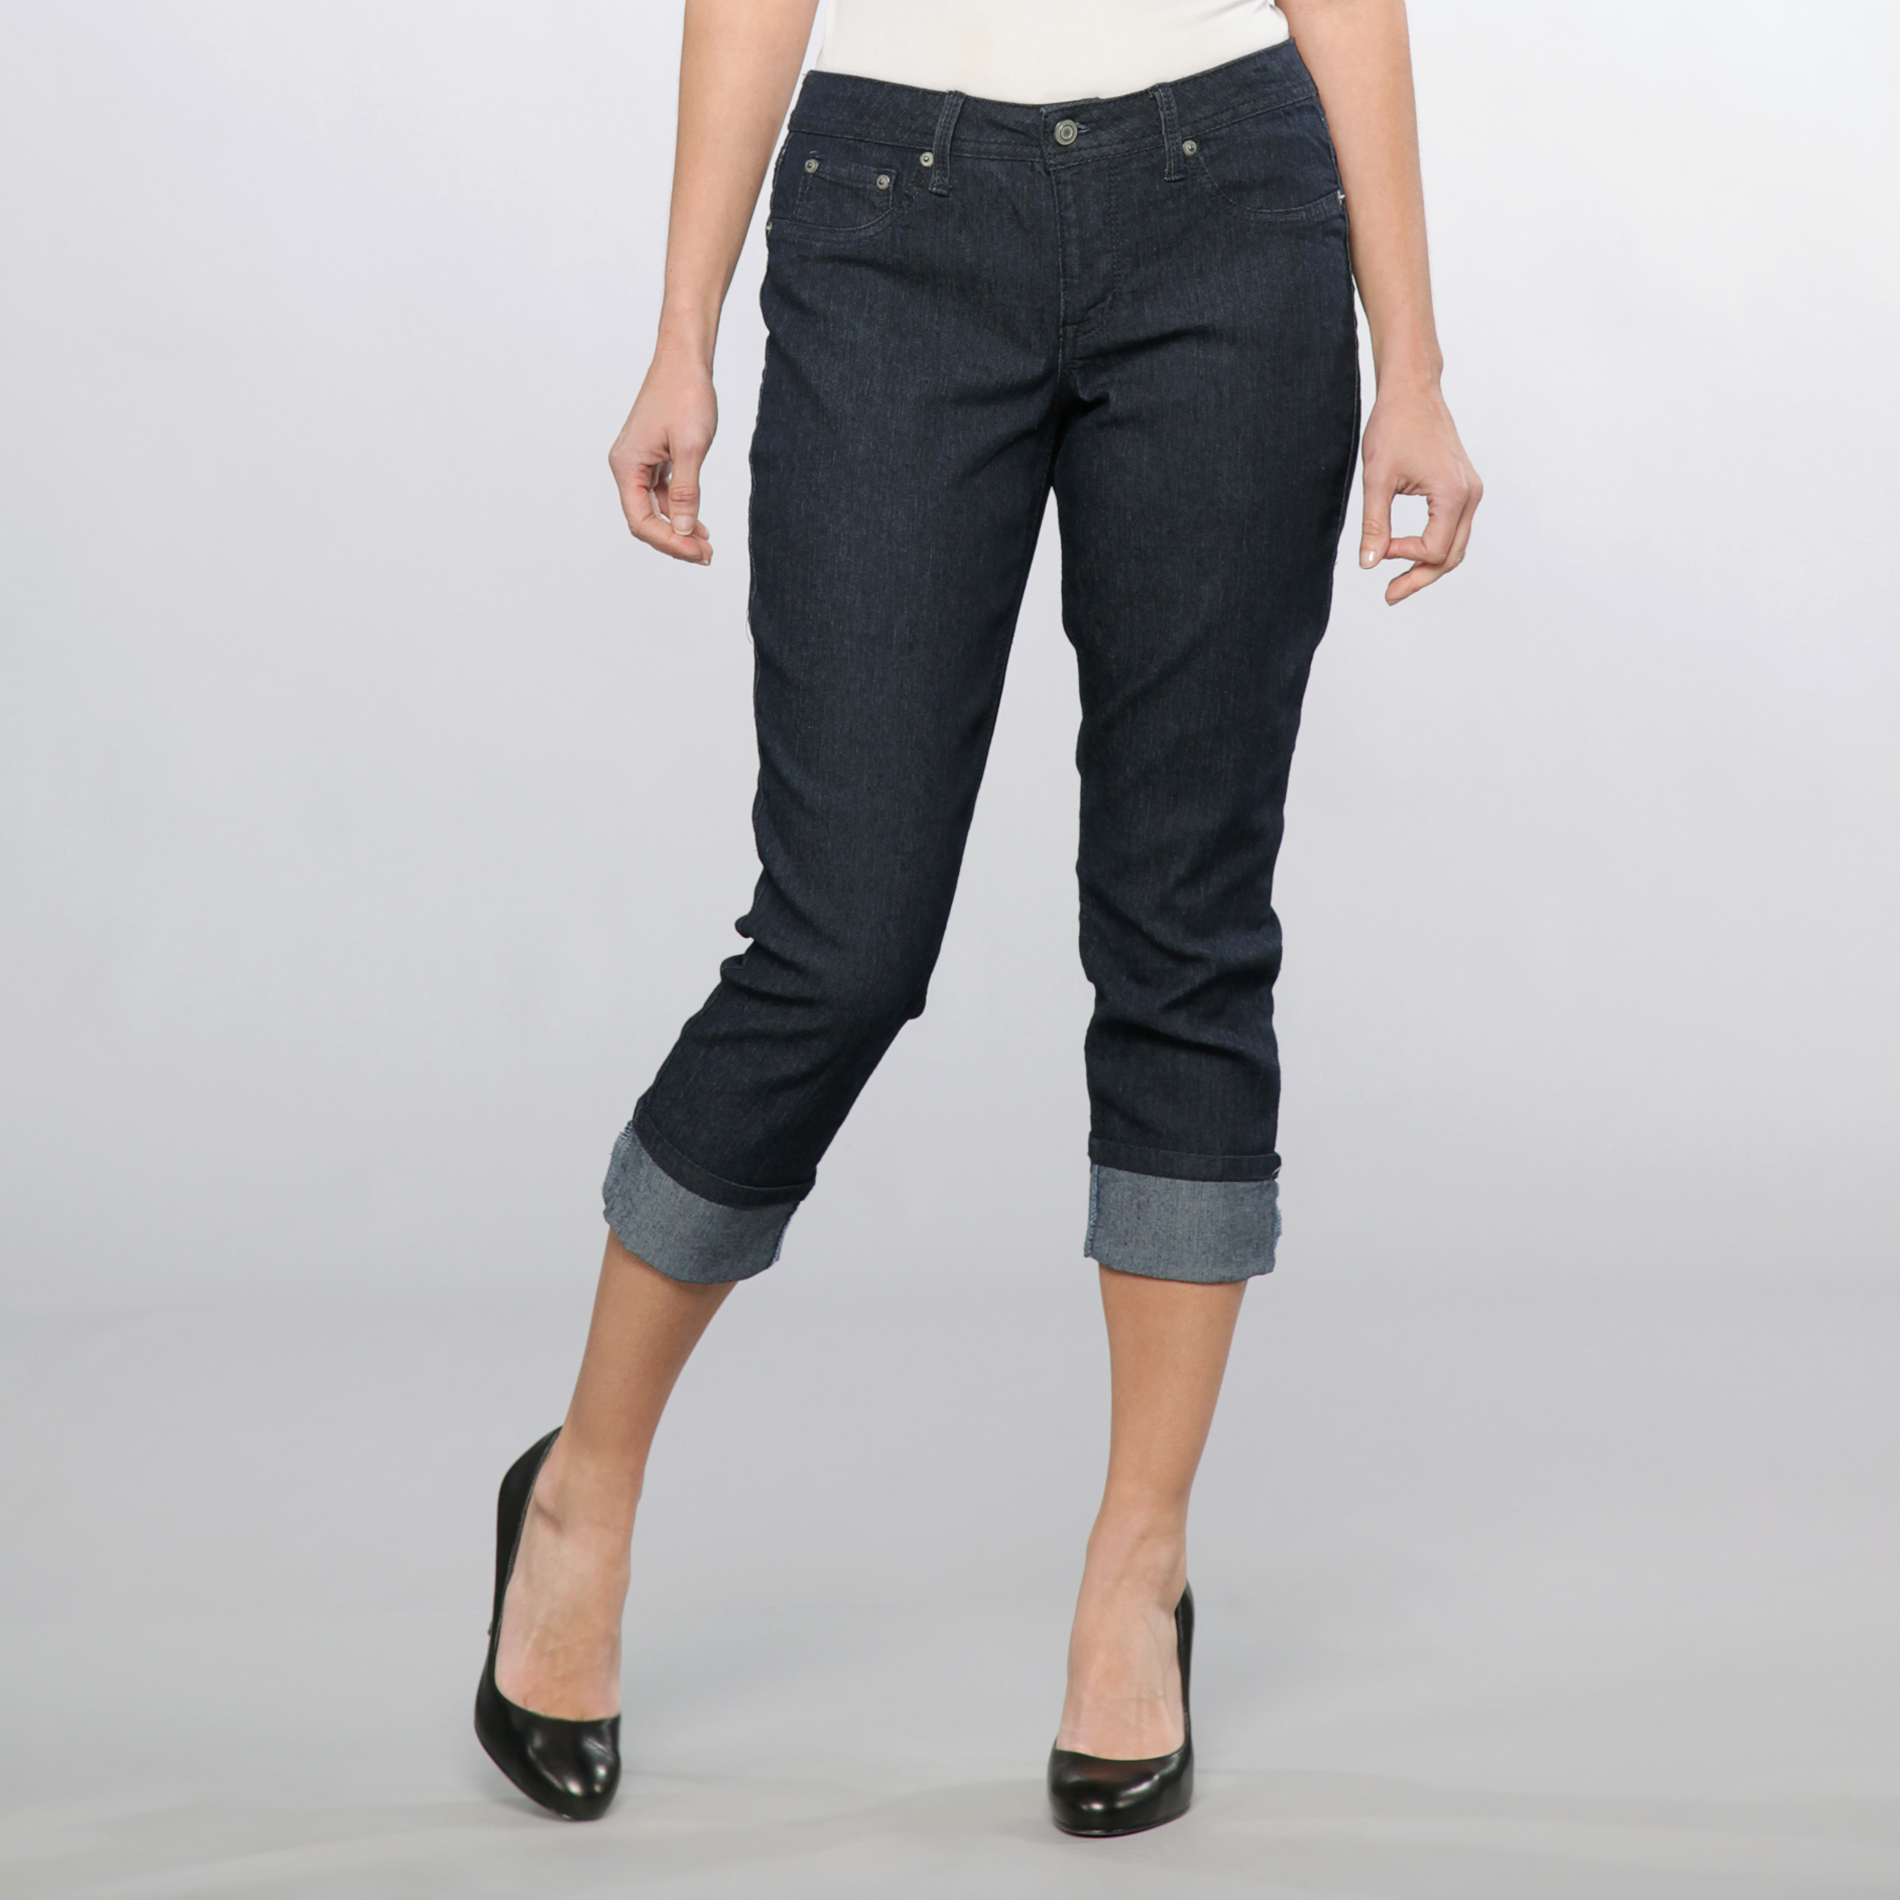 Canyon River Blues Women's Cuffed Cropped Denim Pants at Sears.com